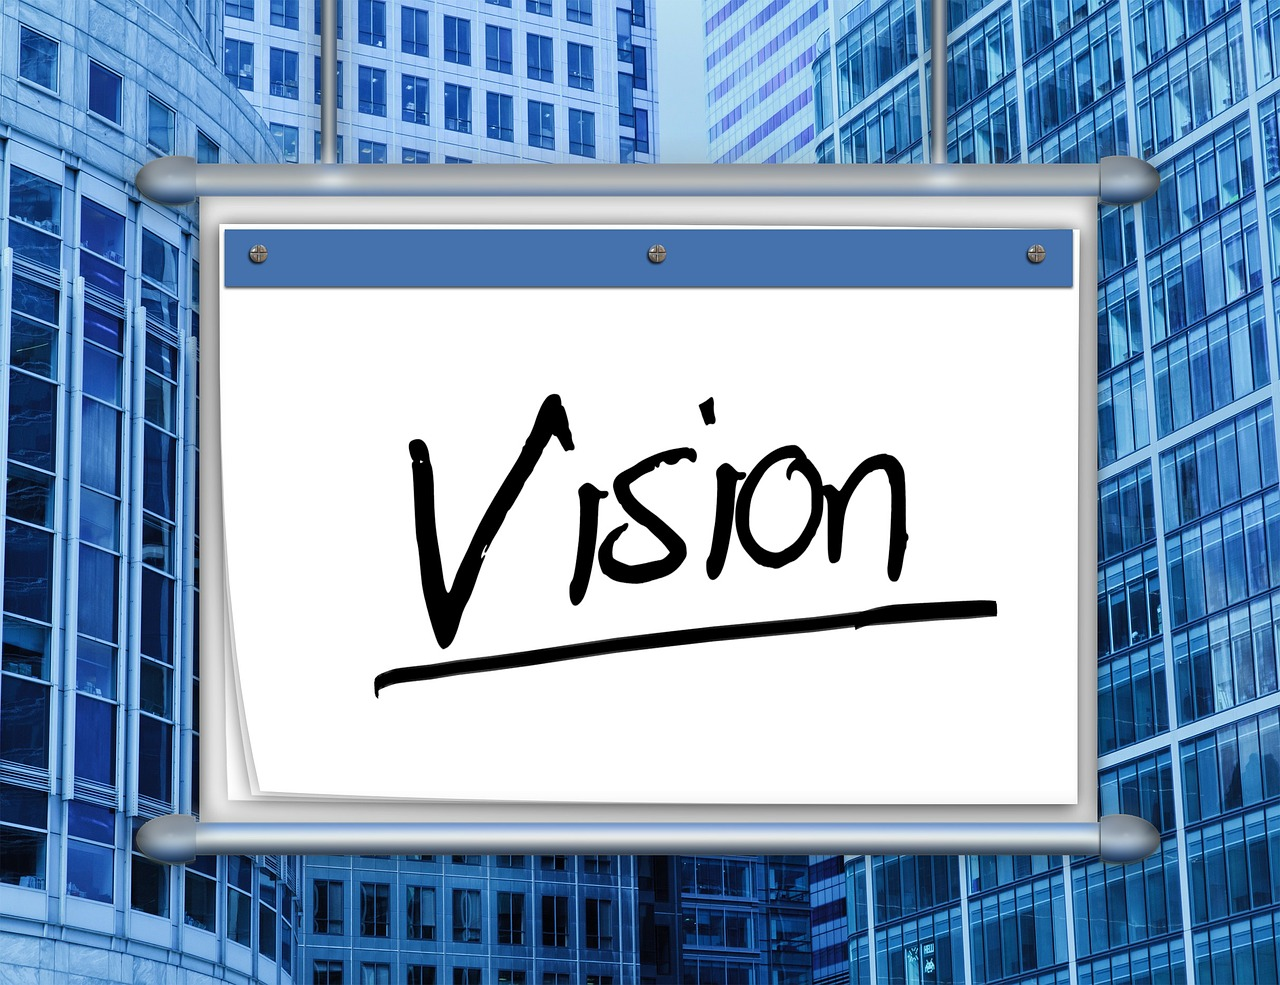 vision - believe in your vision book